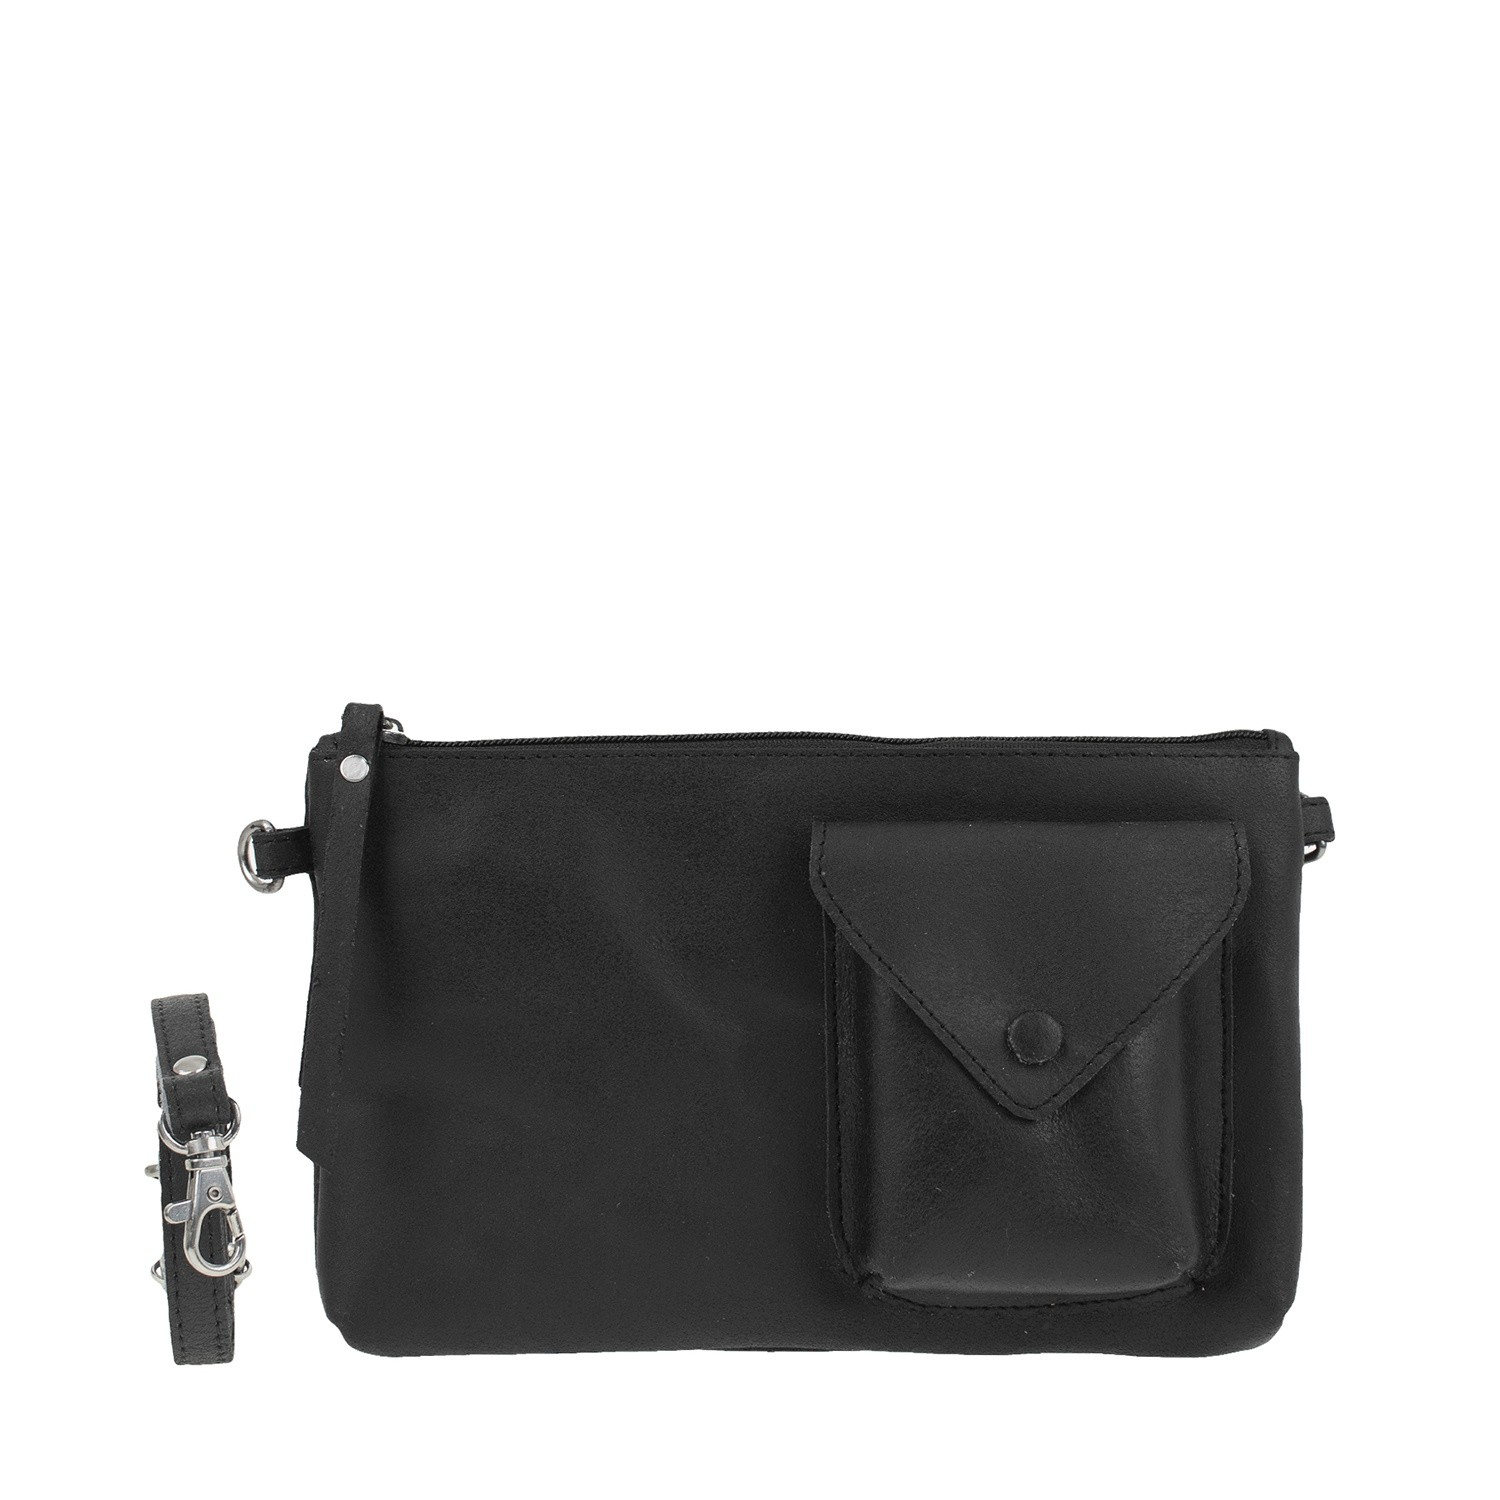 DSTRCT Riverside 011830 Clutch Pocket Black